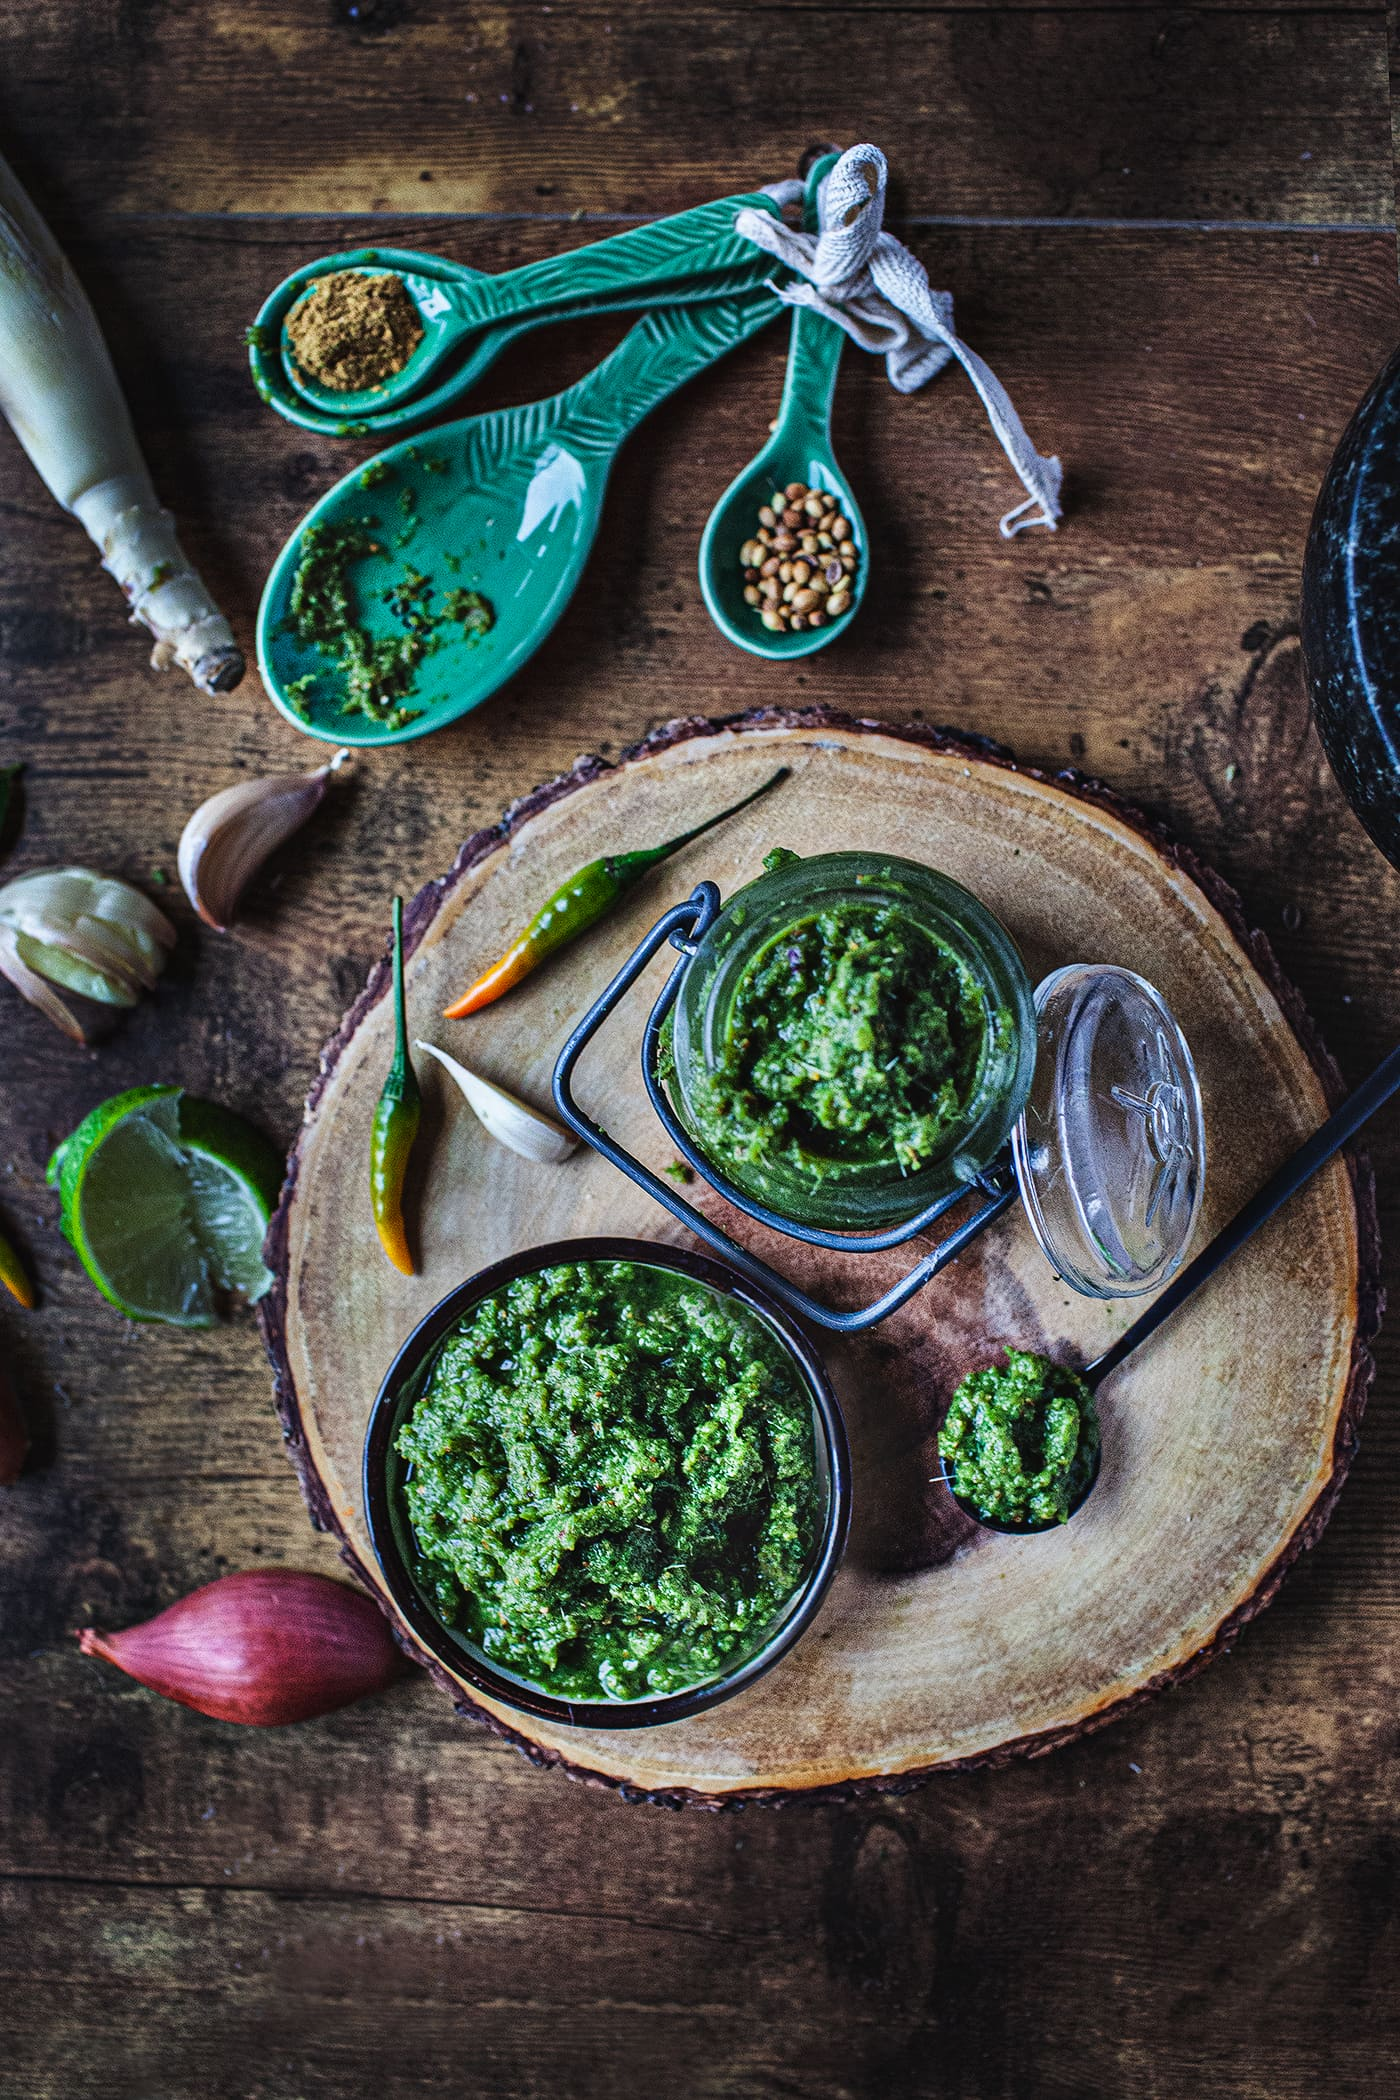 Green curry paste is made from fresh Thai green chilis, garlic, shallots, galangal, kaffir lime rind and leaves, lemongrass, cilantro roots and shrimp paste. These ingredients are typically ground together in a granite mortar and pestle to a paste and that paste is then used to make green curry paste. #greencurrypaste #thaipeppers #thaigreencurry #greencurry